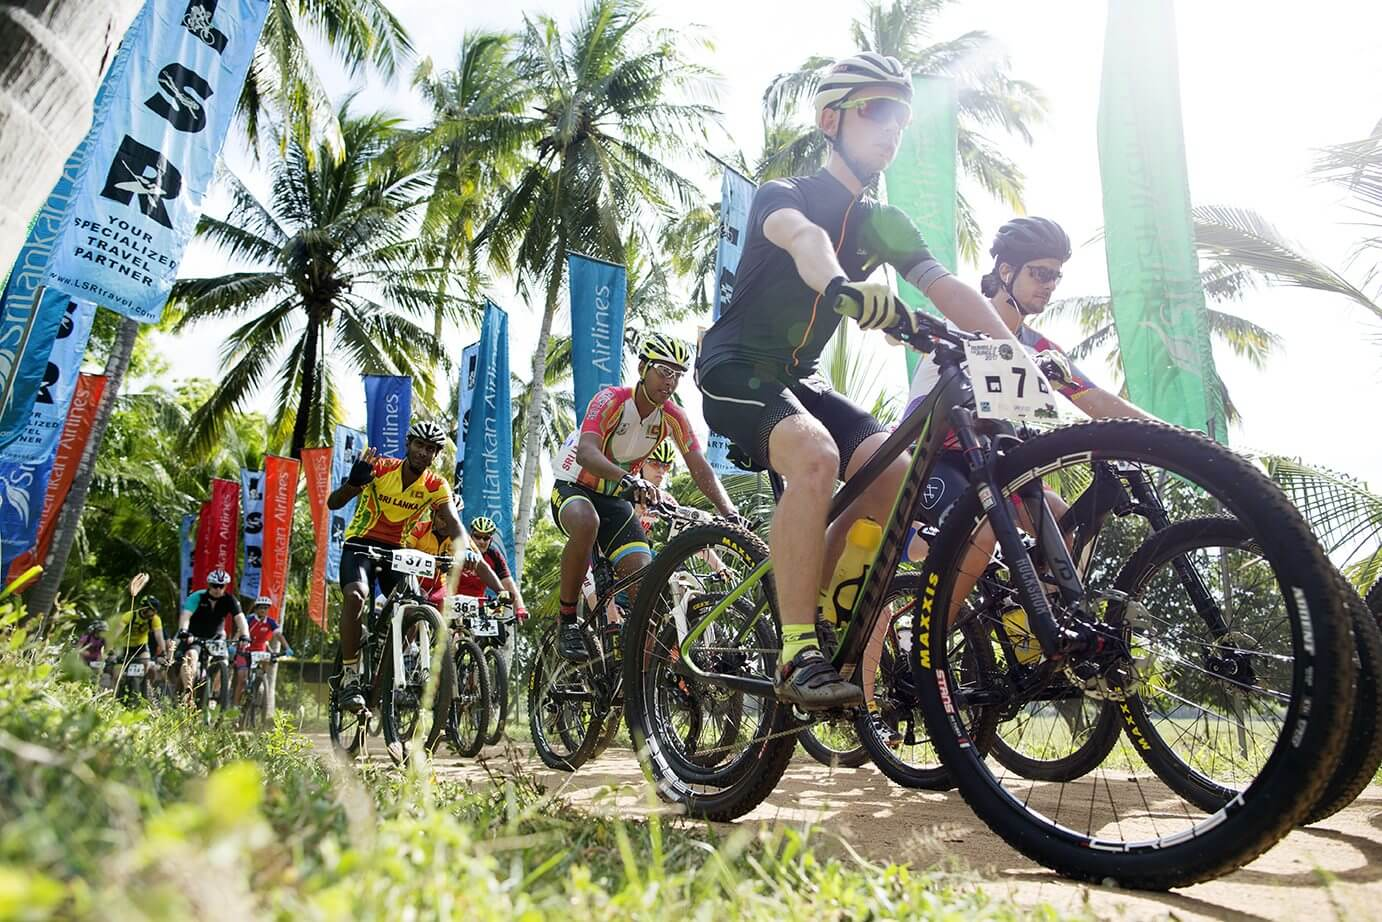 Start of the race in Kuda Oya, Sri Lanka